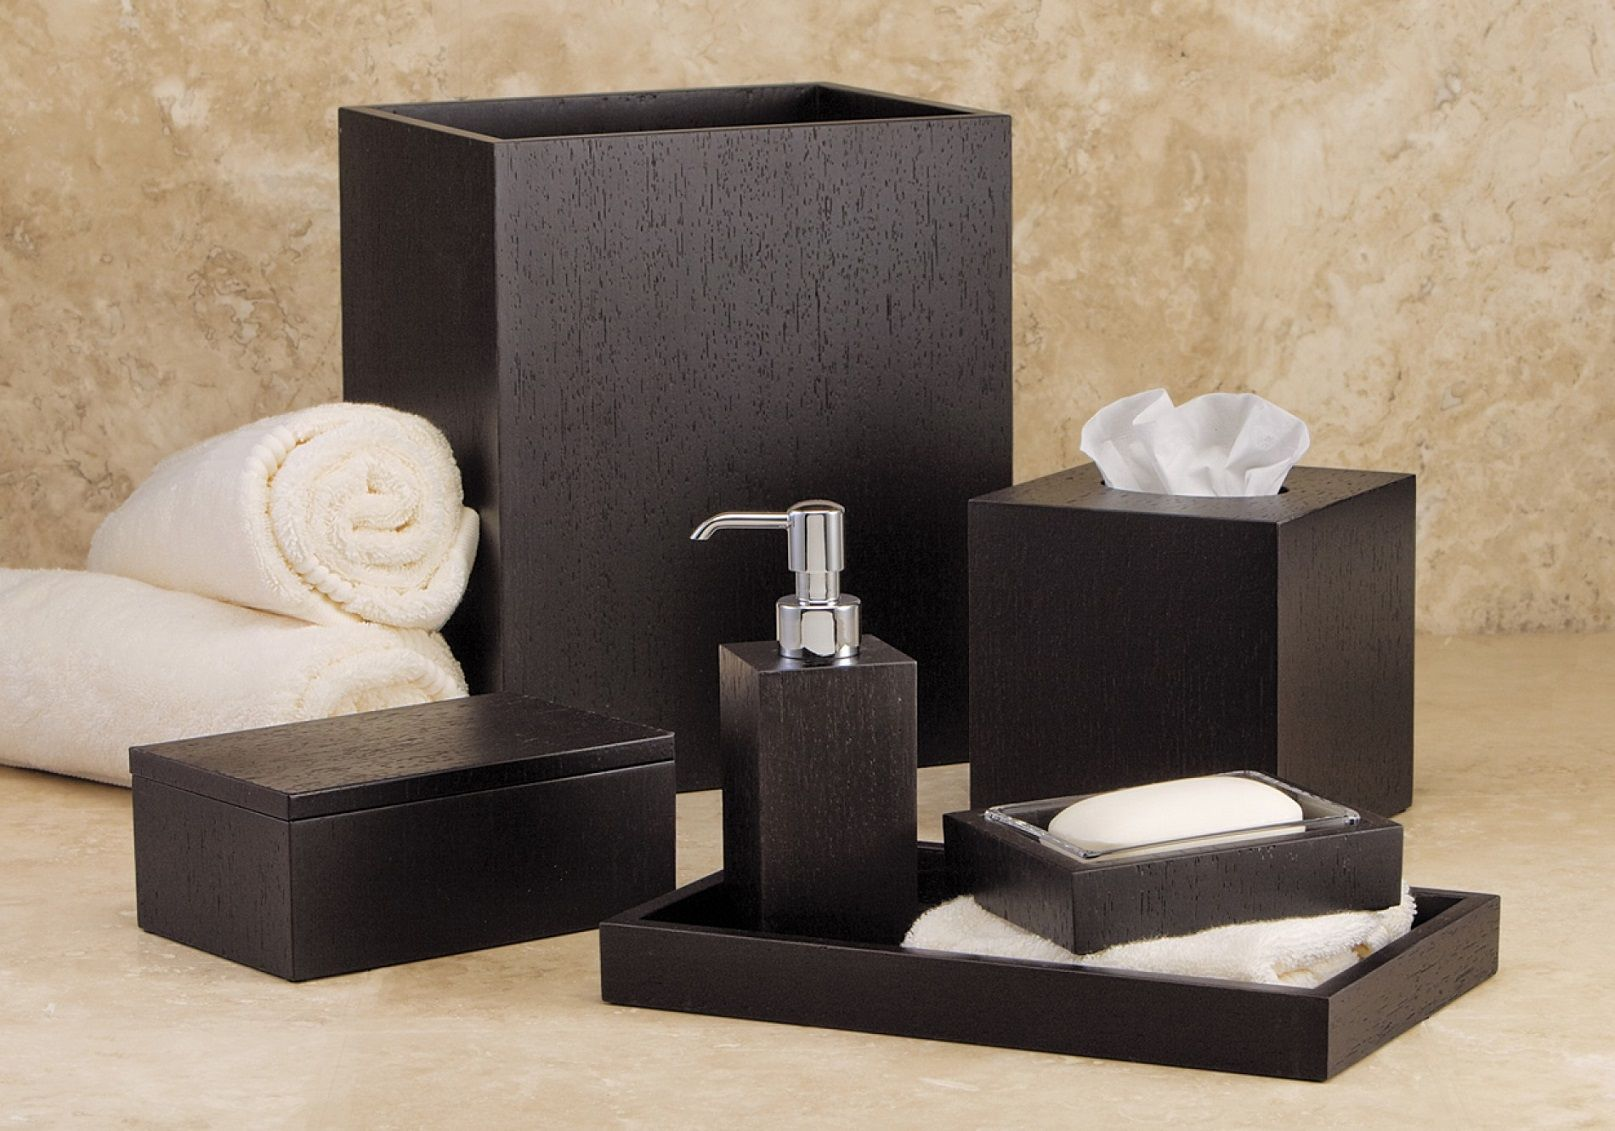 Decorative Bathroom Accessories For Hotel Project: Italian Wenge Hotel Bathroom Accessories Set